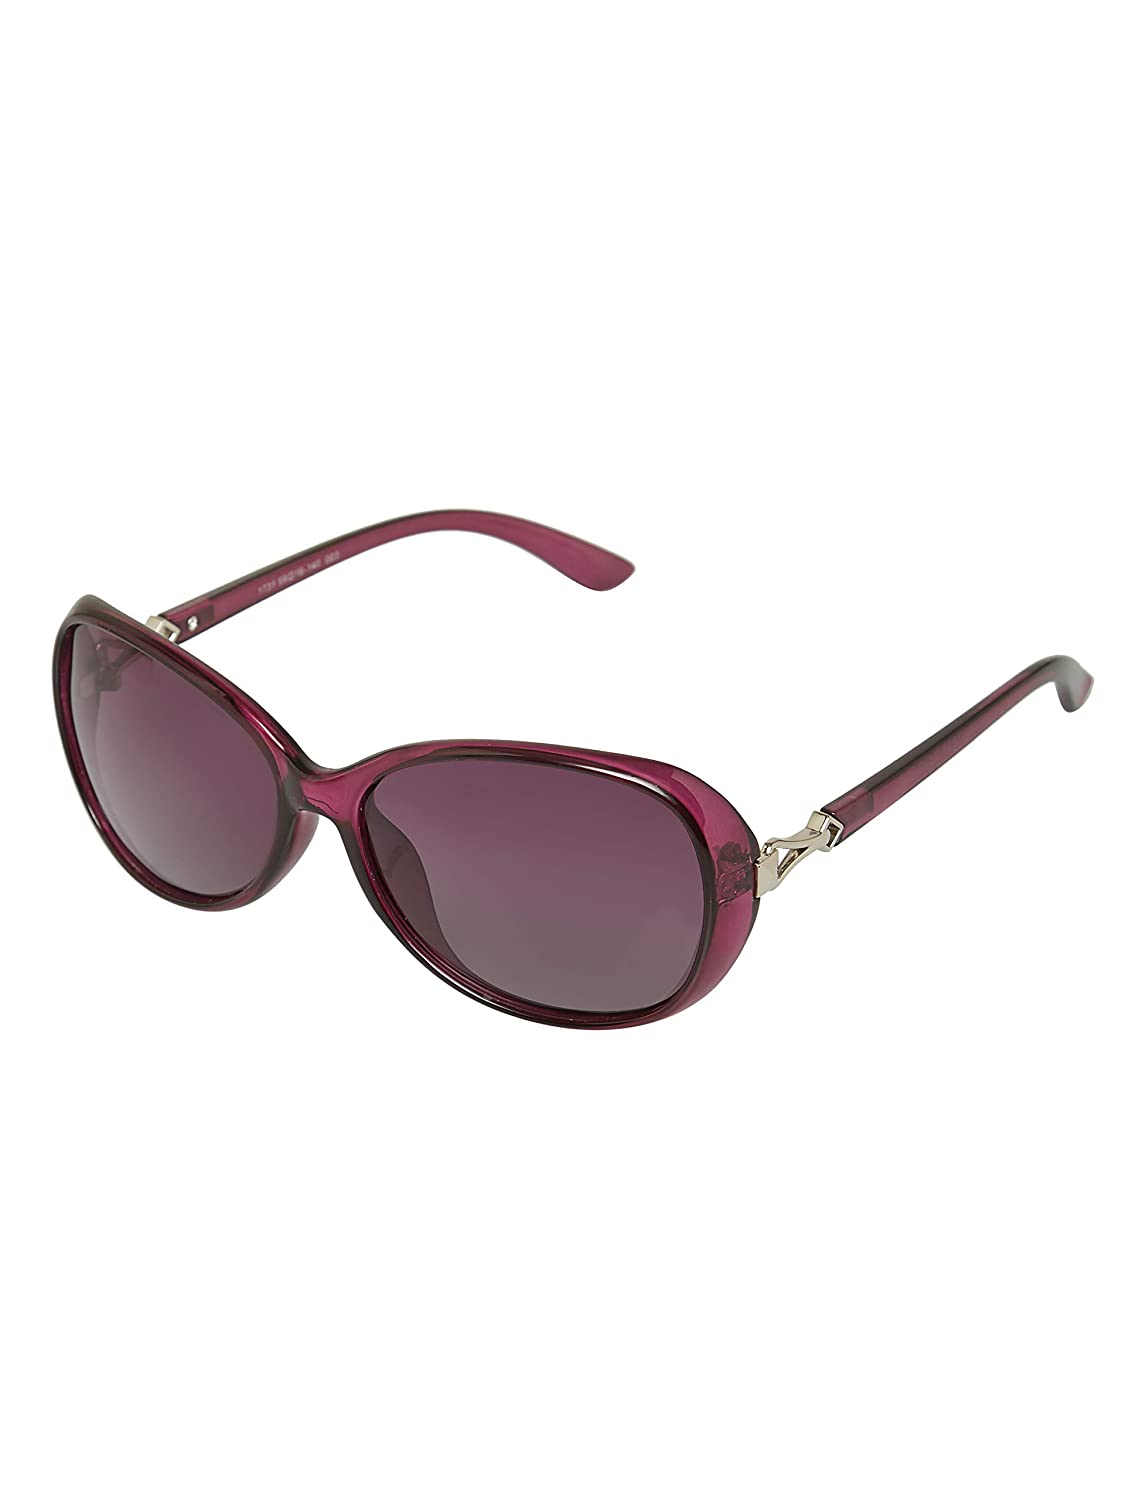 Vast Polarized Over sized Women Sunglasses (1731_C3_PURPLE)